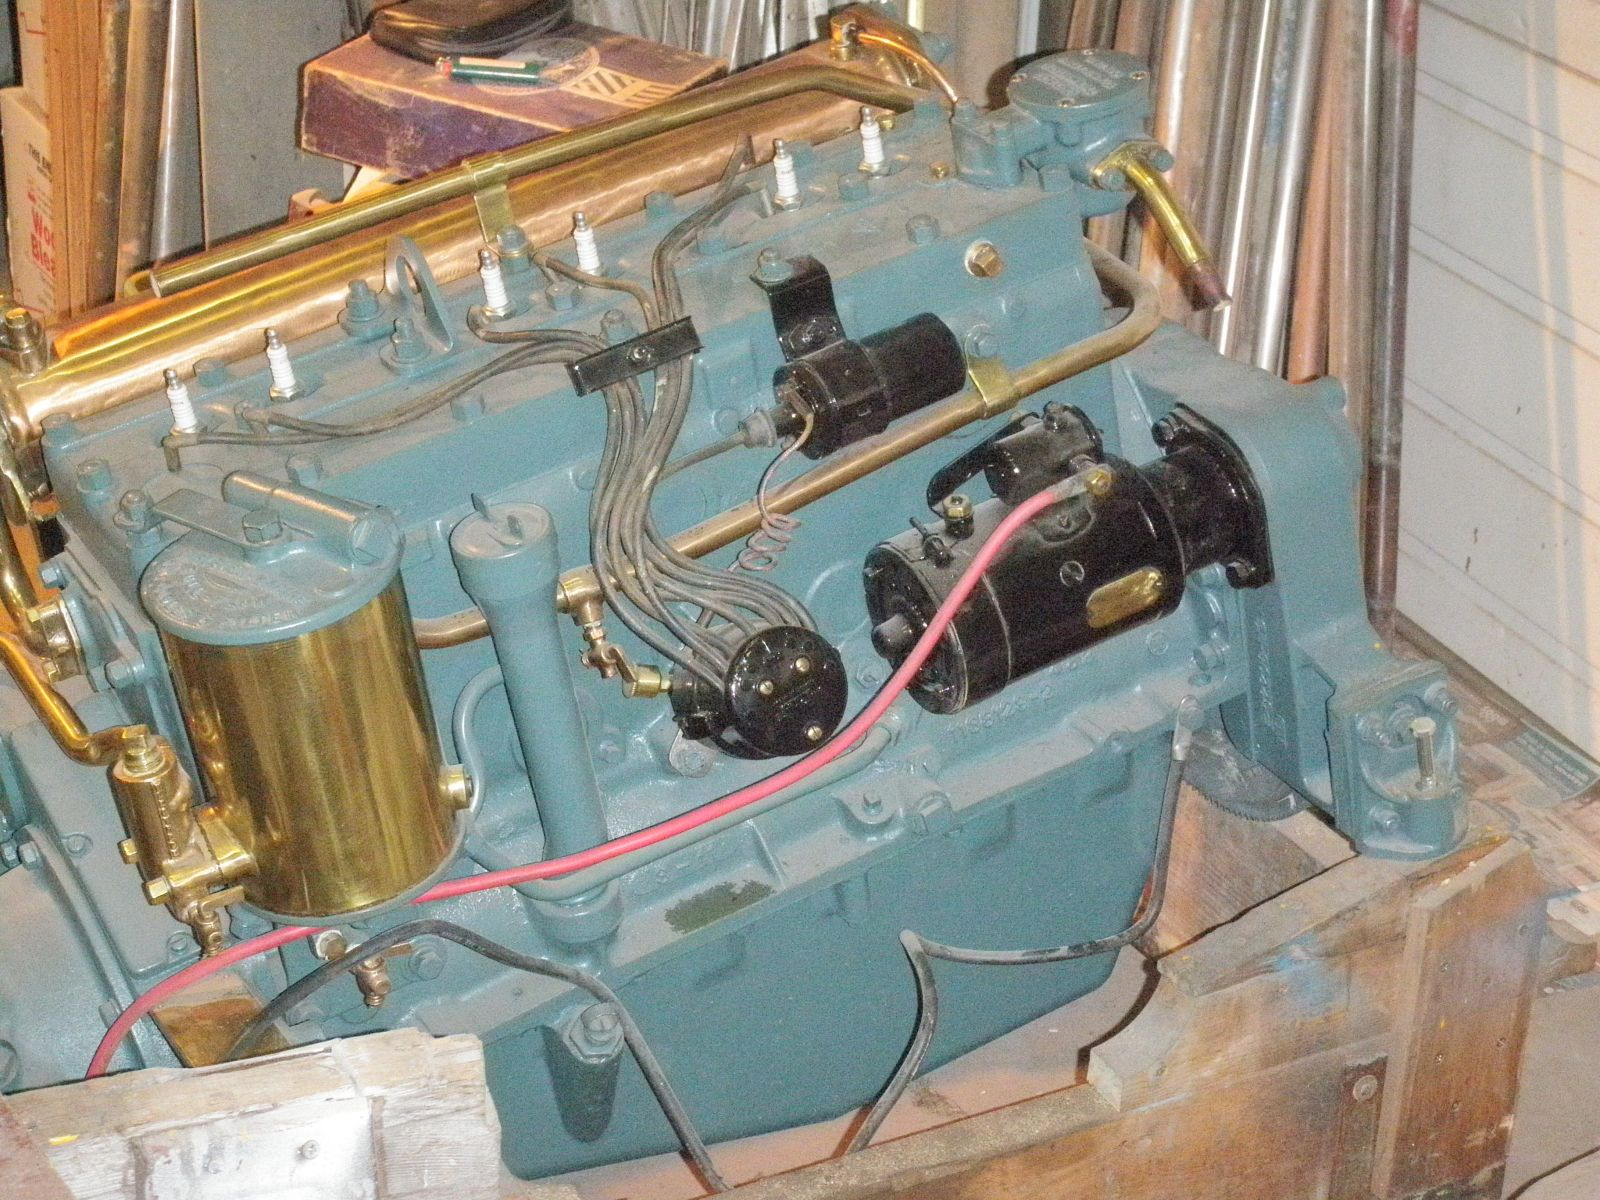 Used Boat Motors For Sale in Michigan | Antique Boat Engines